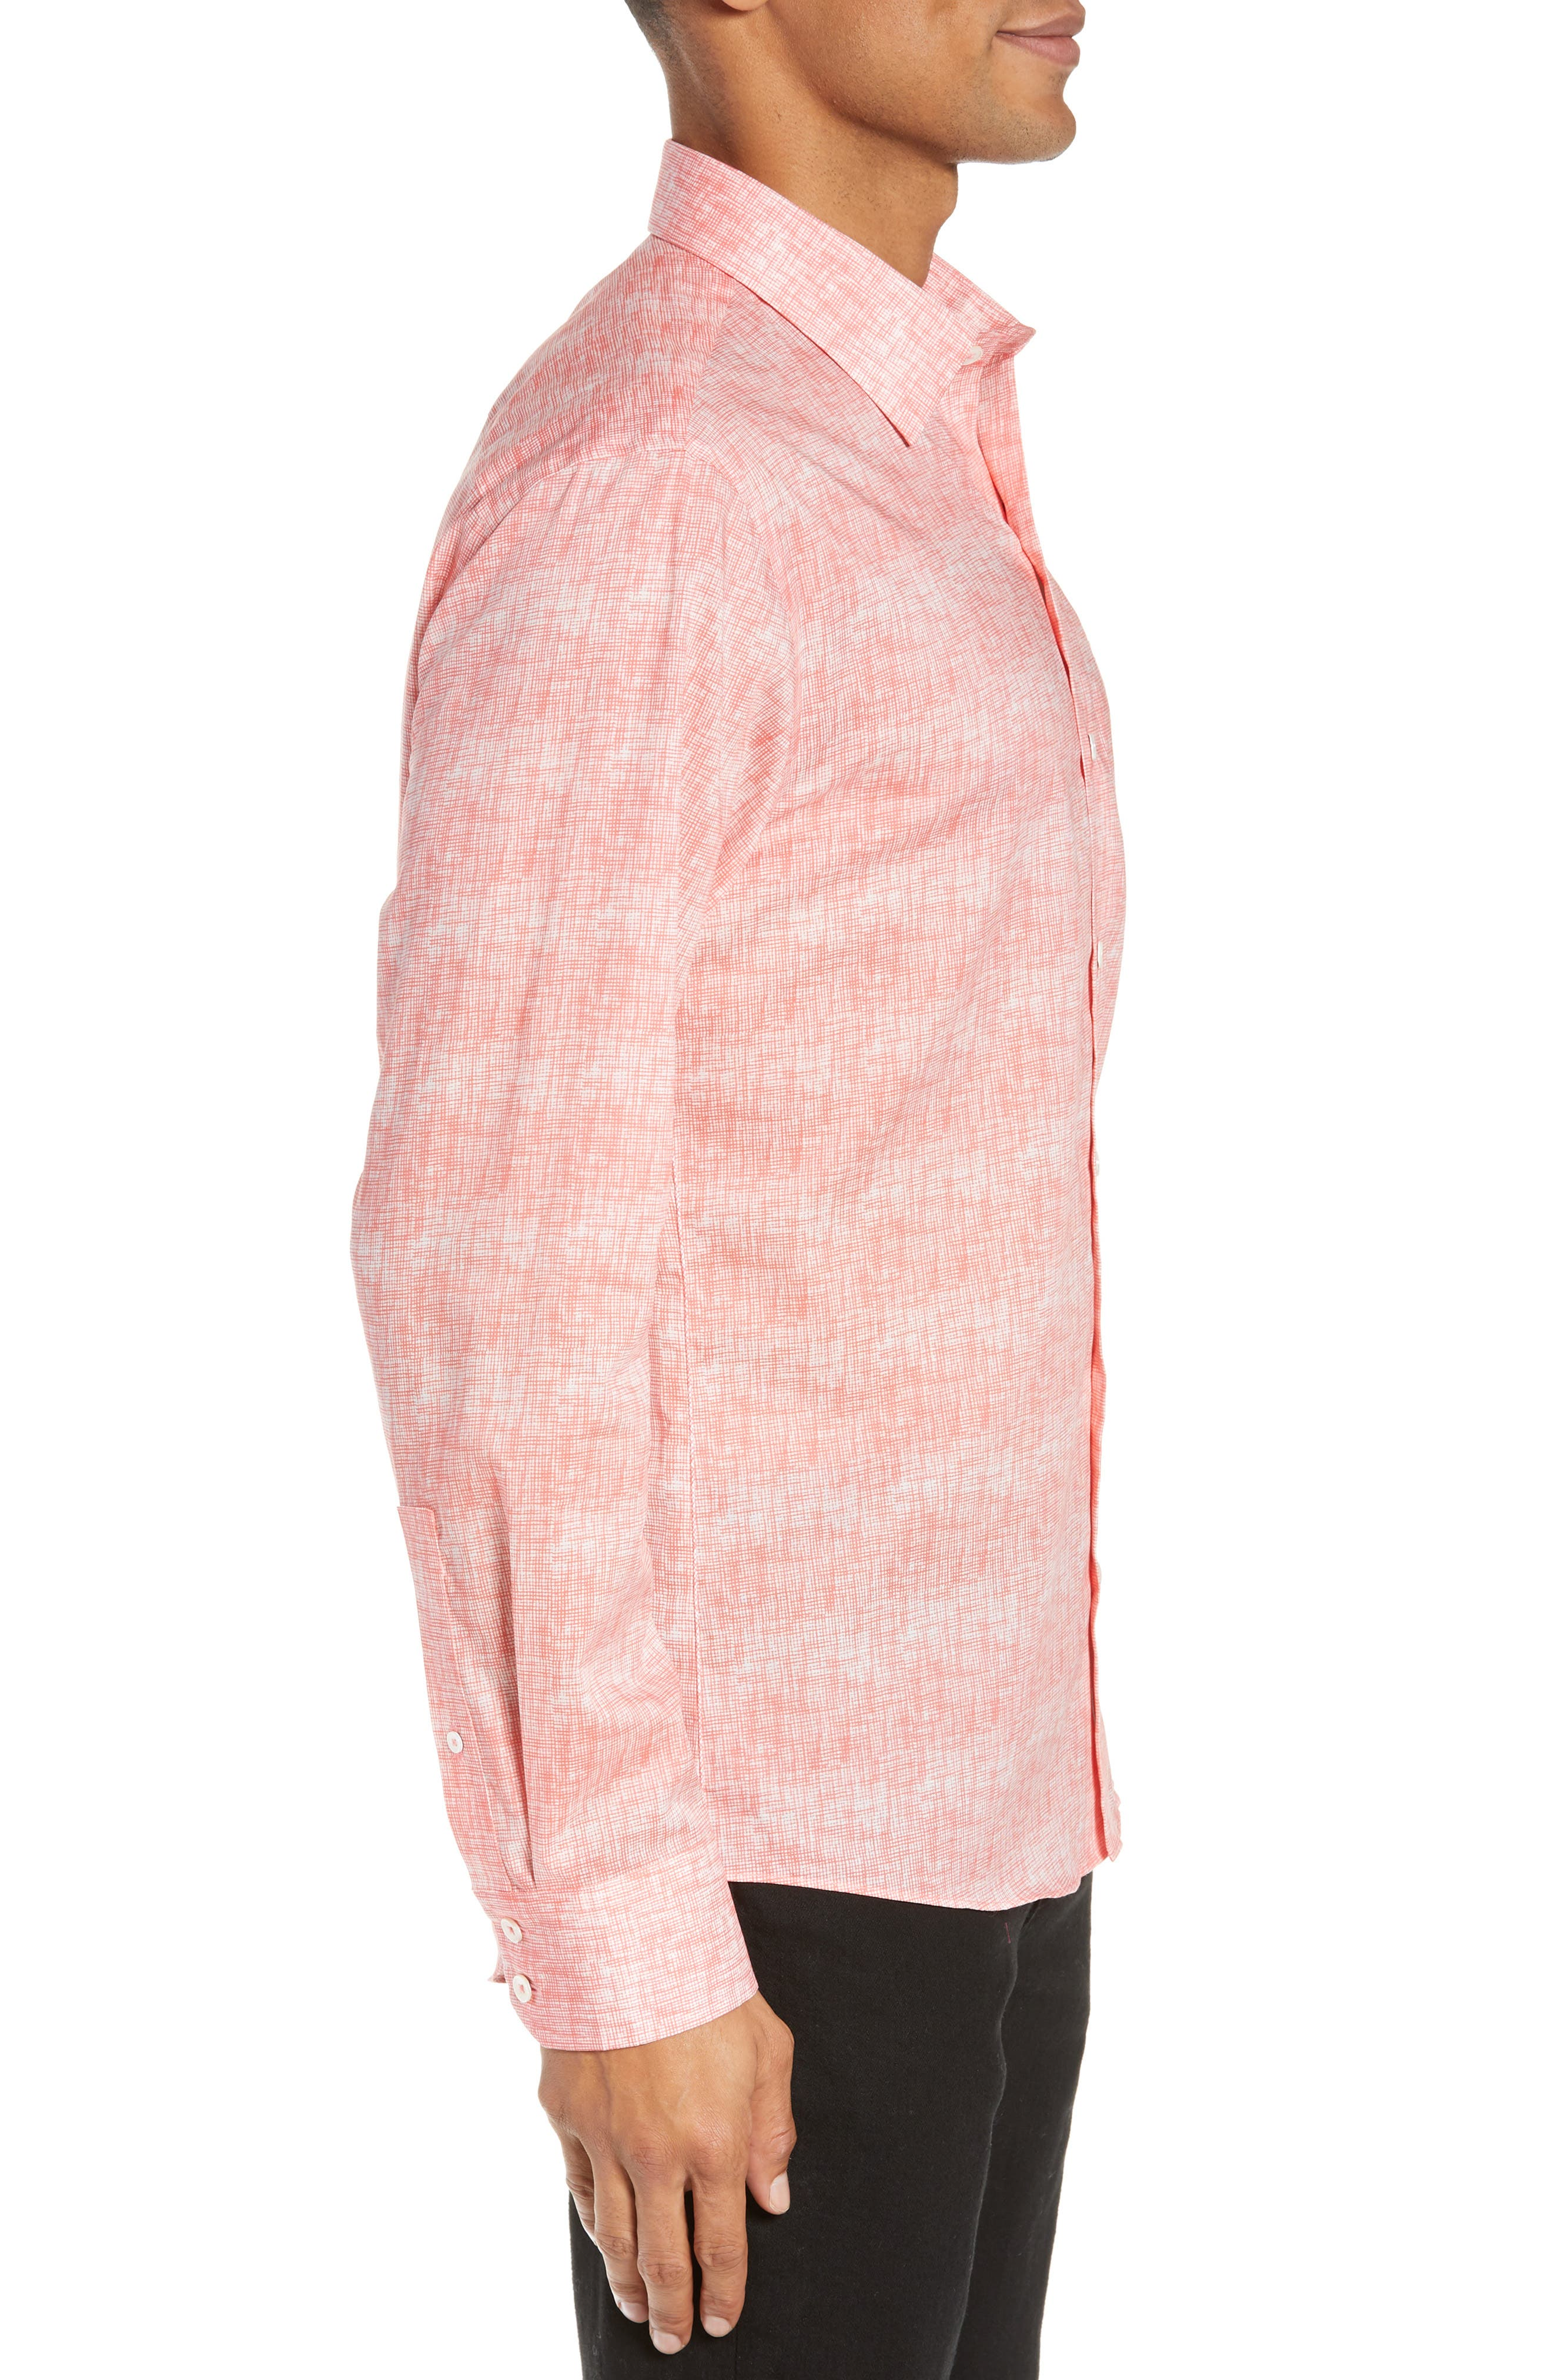 Griffin Regular Fit Sport Shirt,                             Alternate thumbnail 4, color,                             PINK